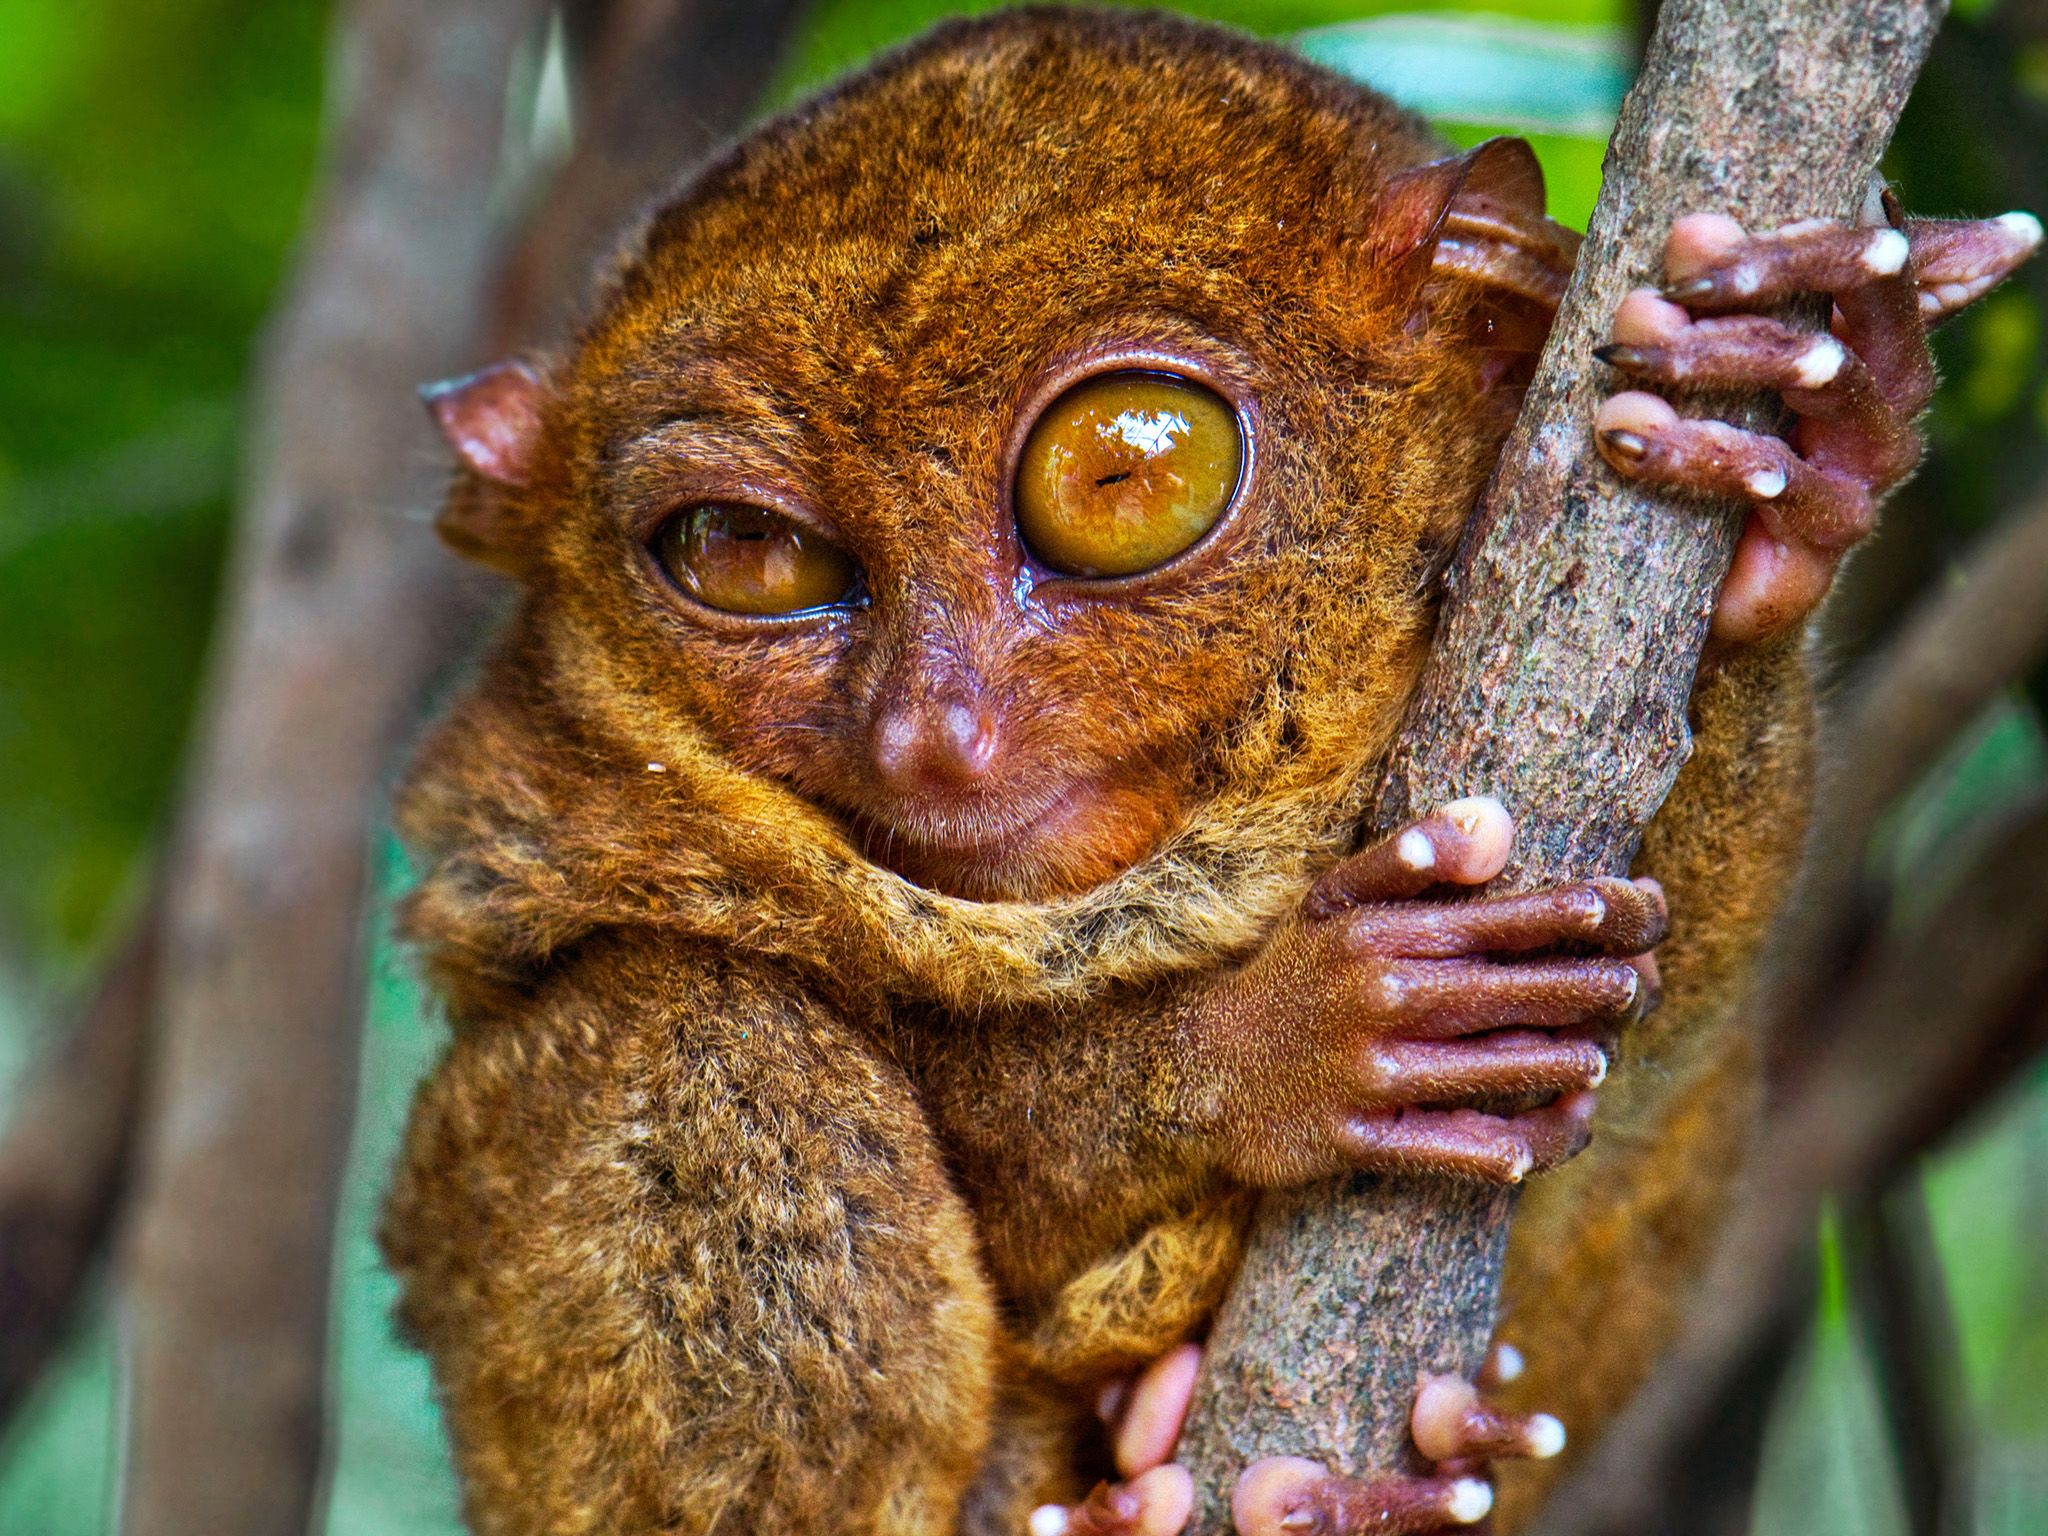 Don't be fooled by this winking tarsier; its eyes, hands, and legs are part of what make it a hig... [Photo of the day - February 2015]